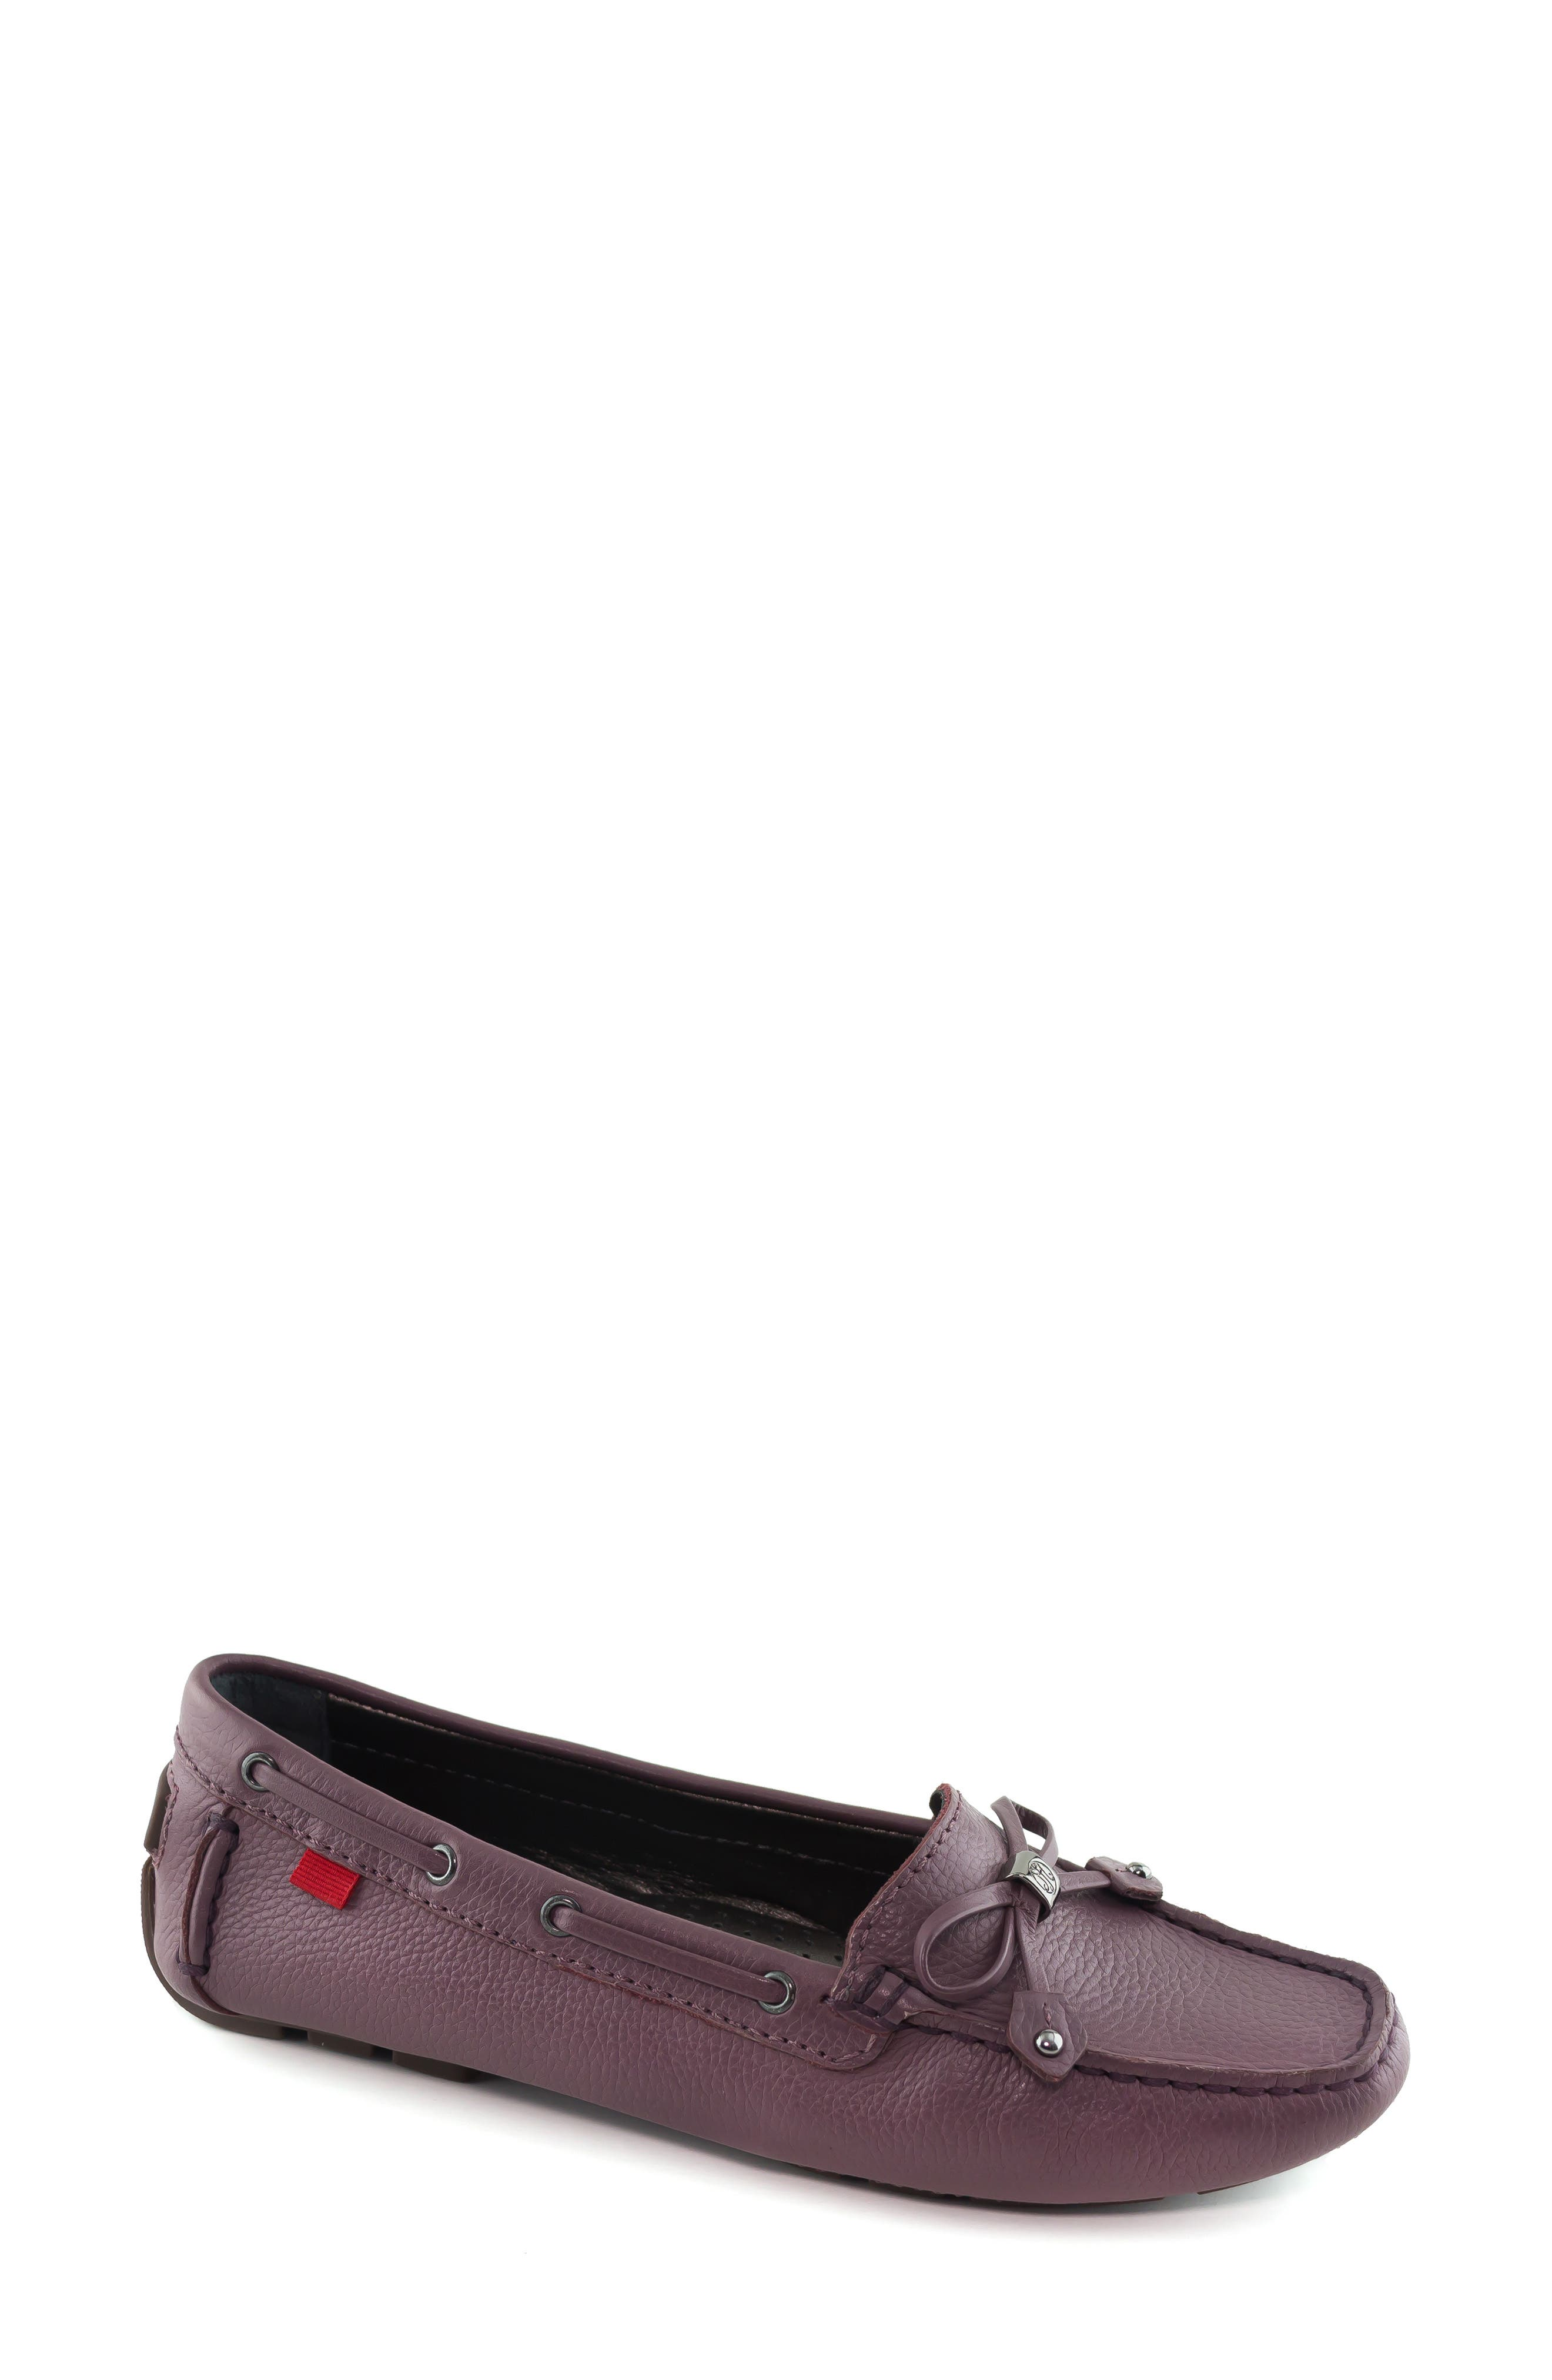 MARC JOSEPH NEW YORK Cypress Hill III Loafer, Main, color, IRIS LEATHER